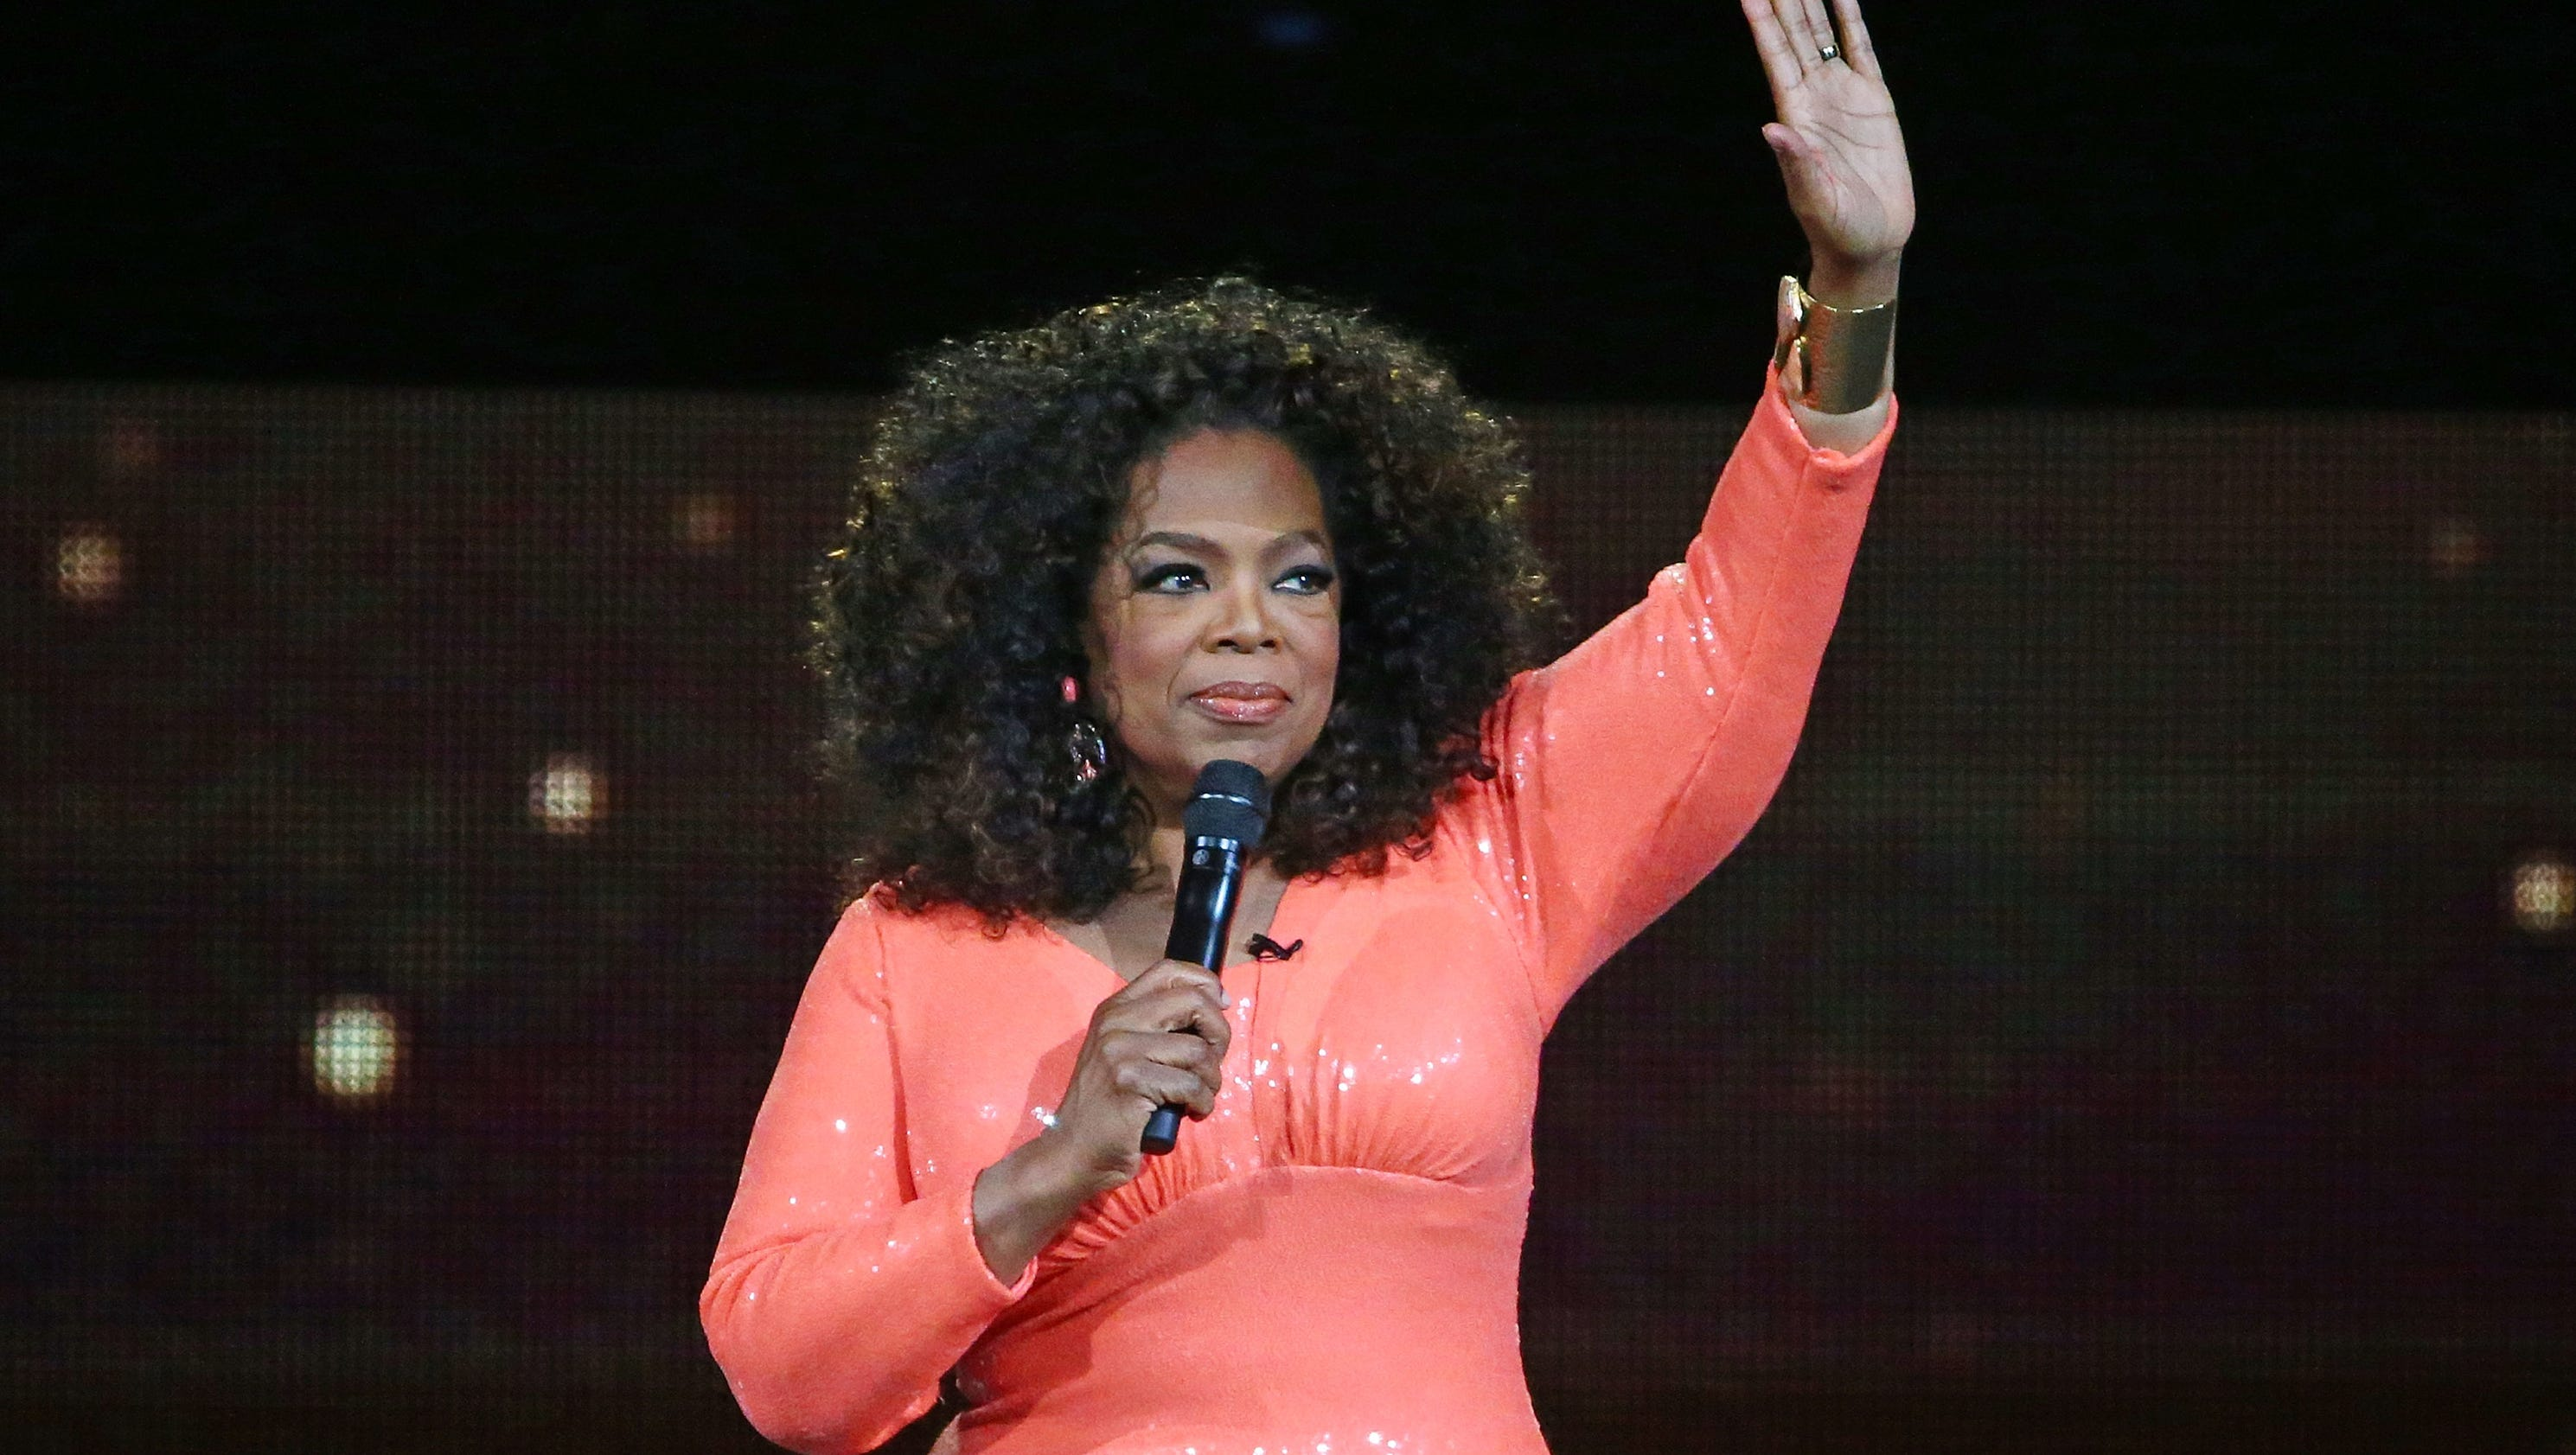 oprah winfrey the story of Oprah winfrey accepted the cecil b demille award for lifetime achievement at the golden globes on sunday and delivered a moving speech that brought men and women in the audience to their feet.